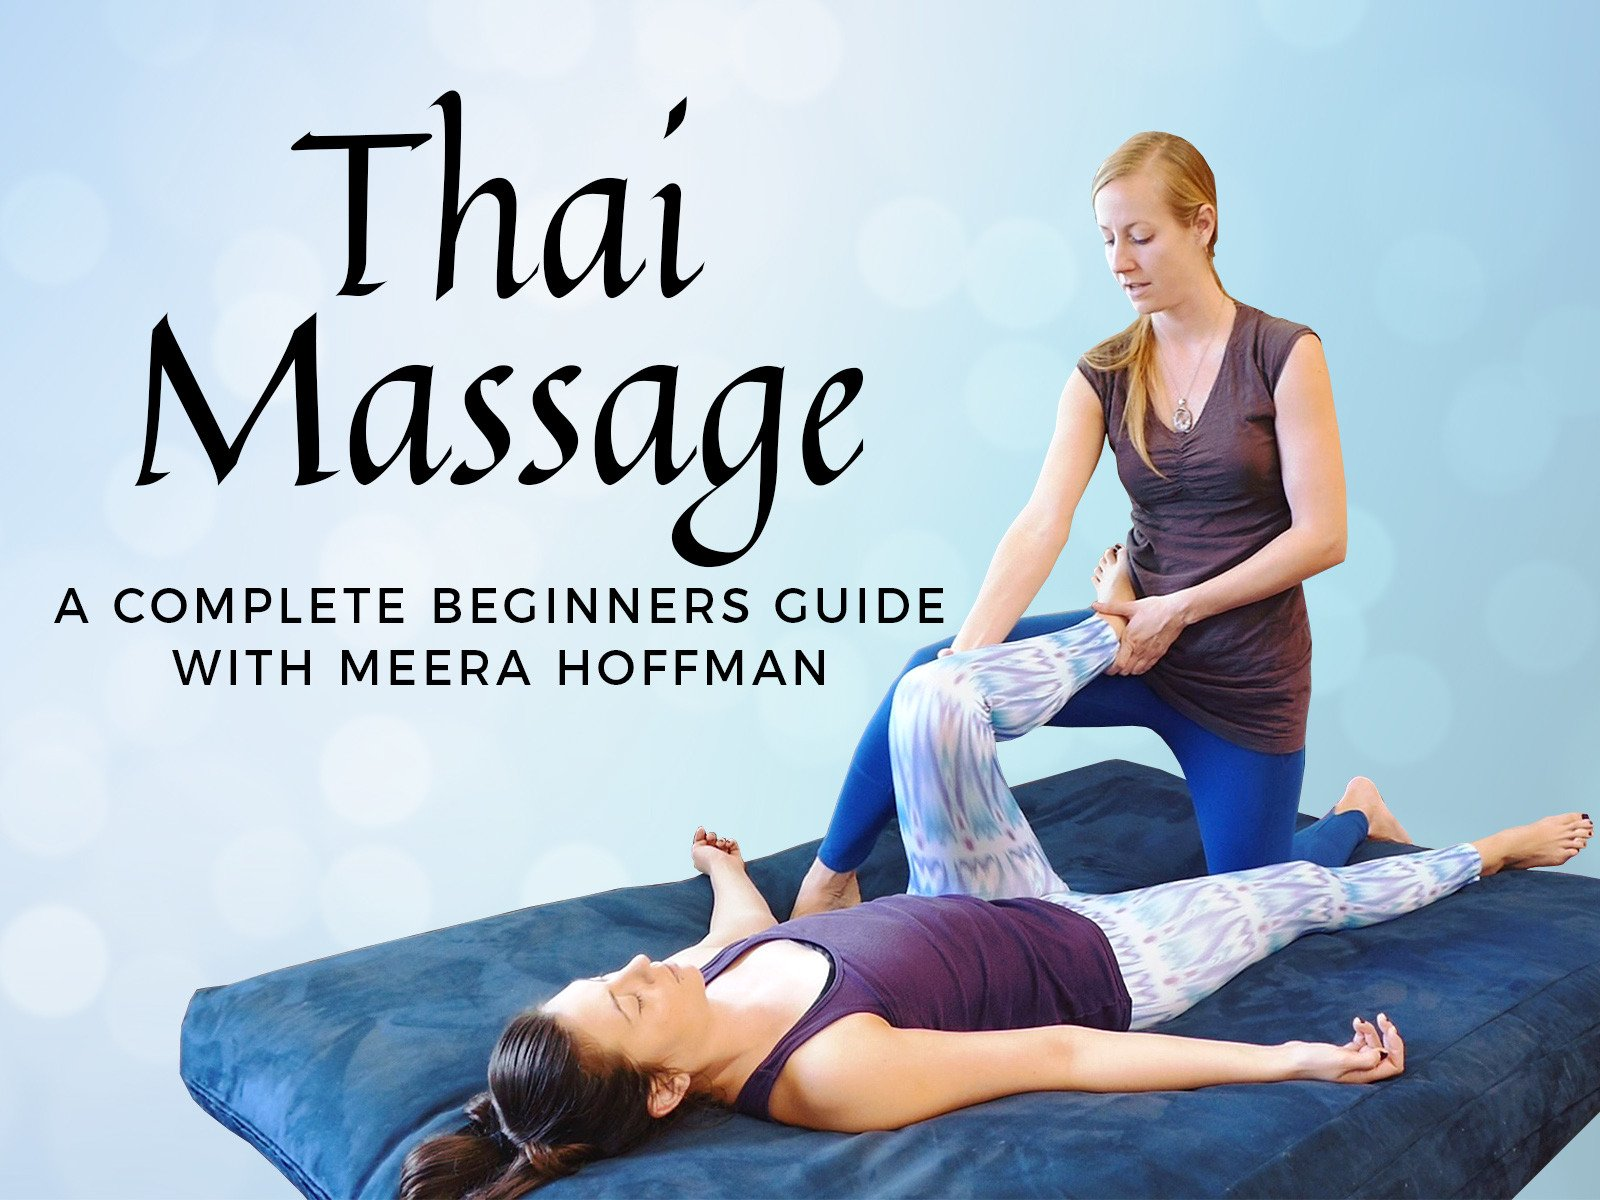 Thai Massage A Complete Beginners Guide With Meera Hoffman - Season 1